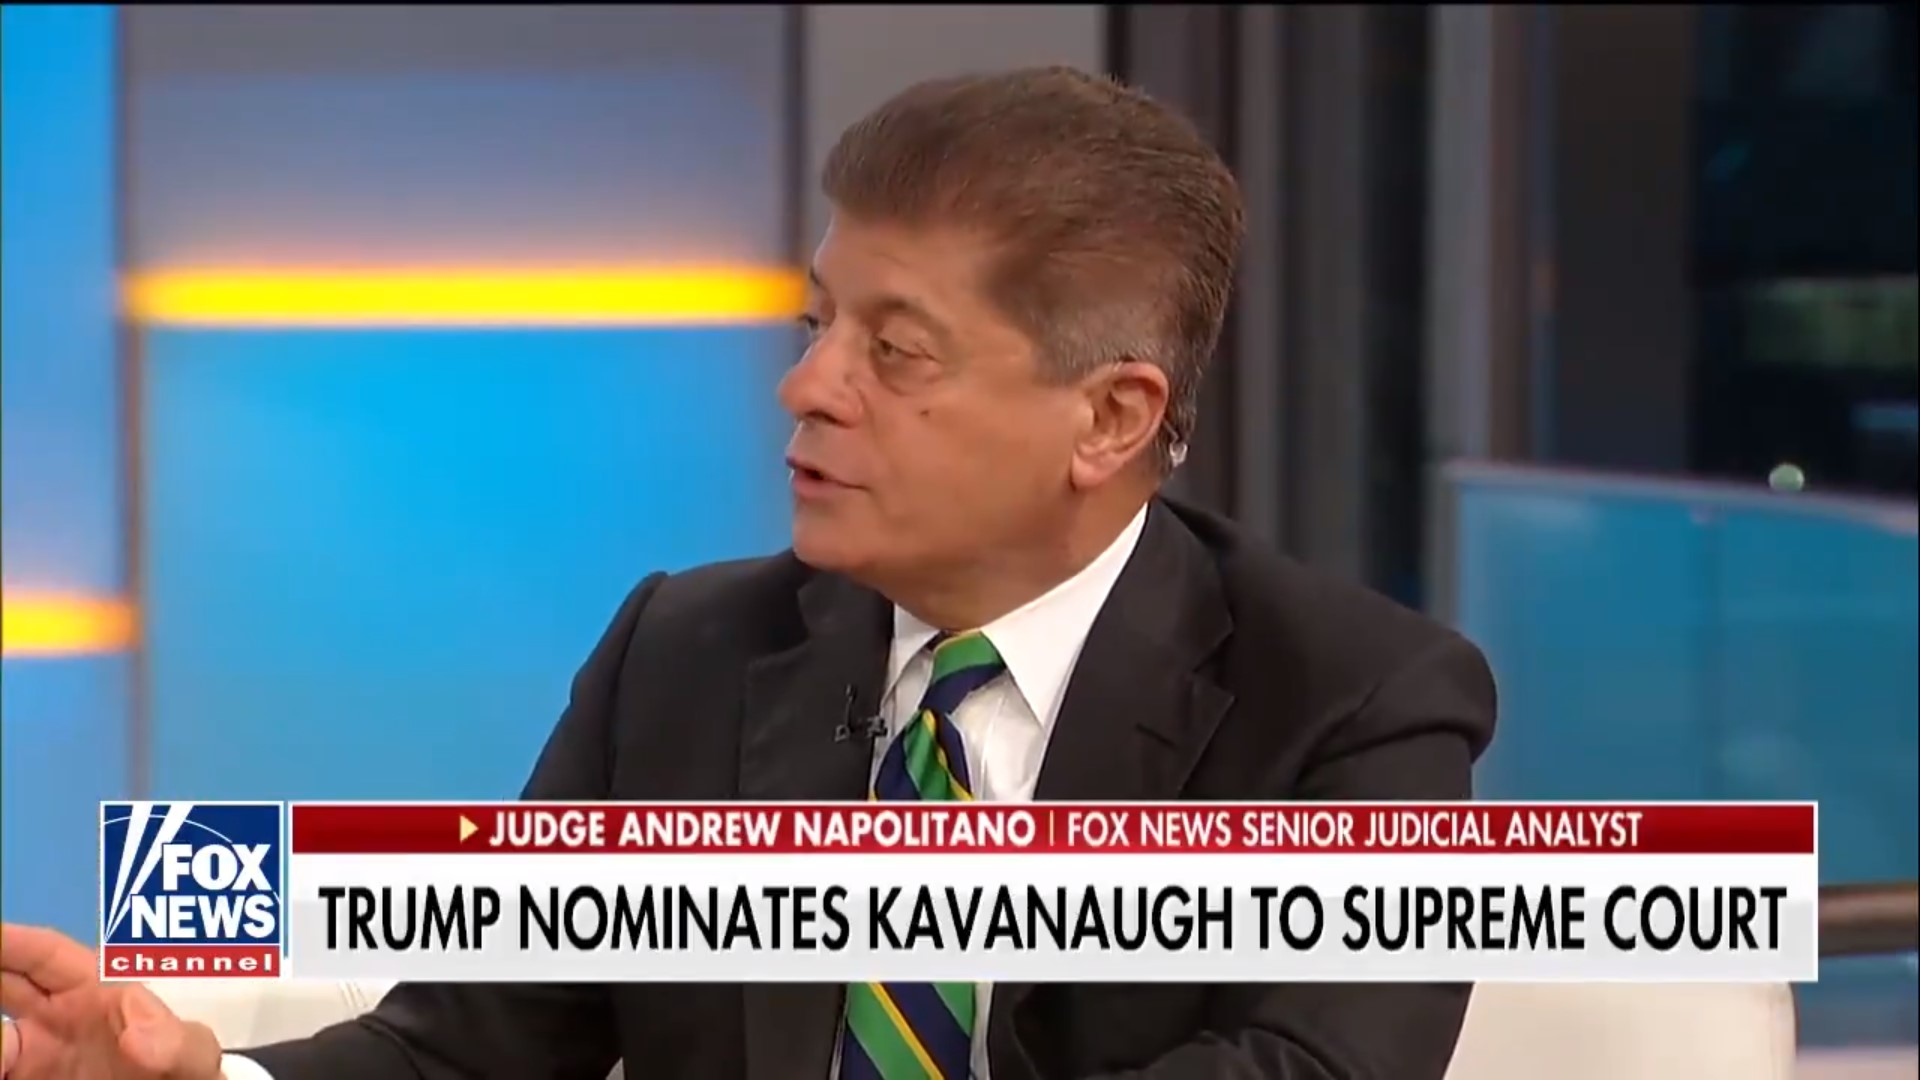 Fox's Judge Napolitano Rails Against Trump's SCOTUS Pick: 'The Swamp' Wanted Kavanaugh